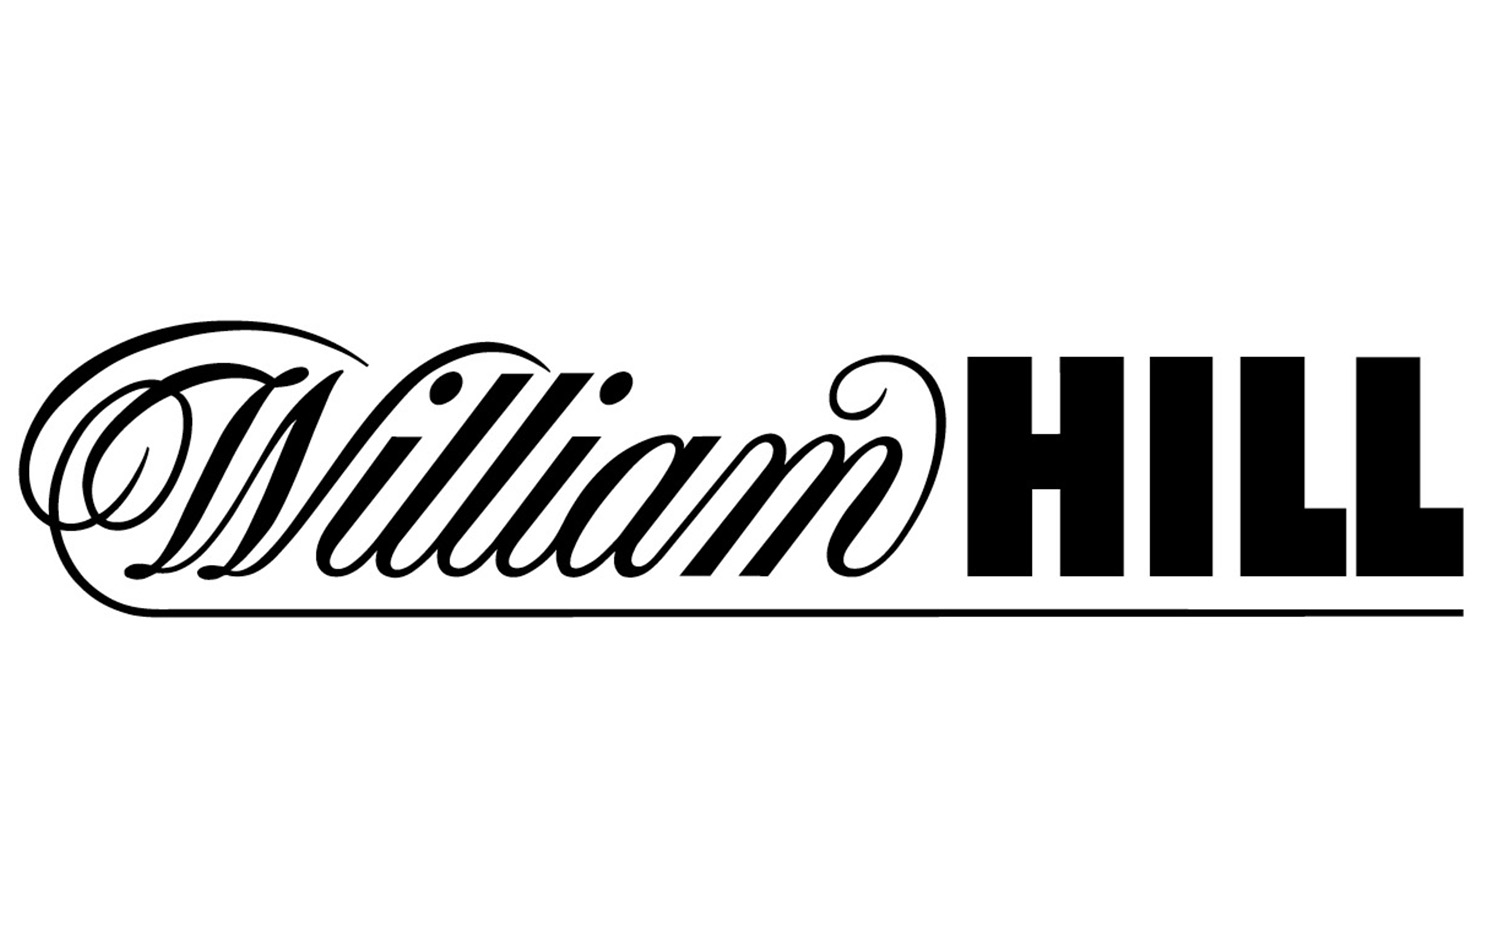 William Hill Логотип